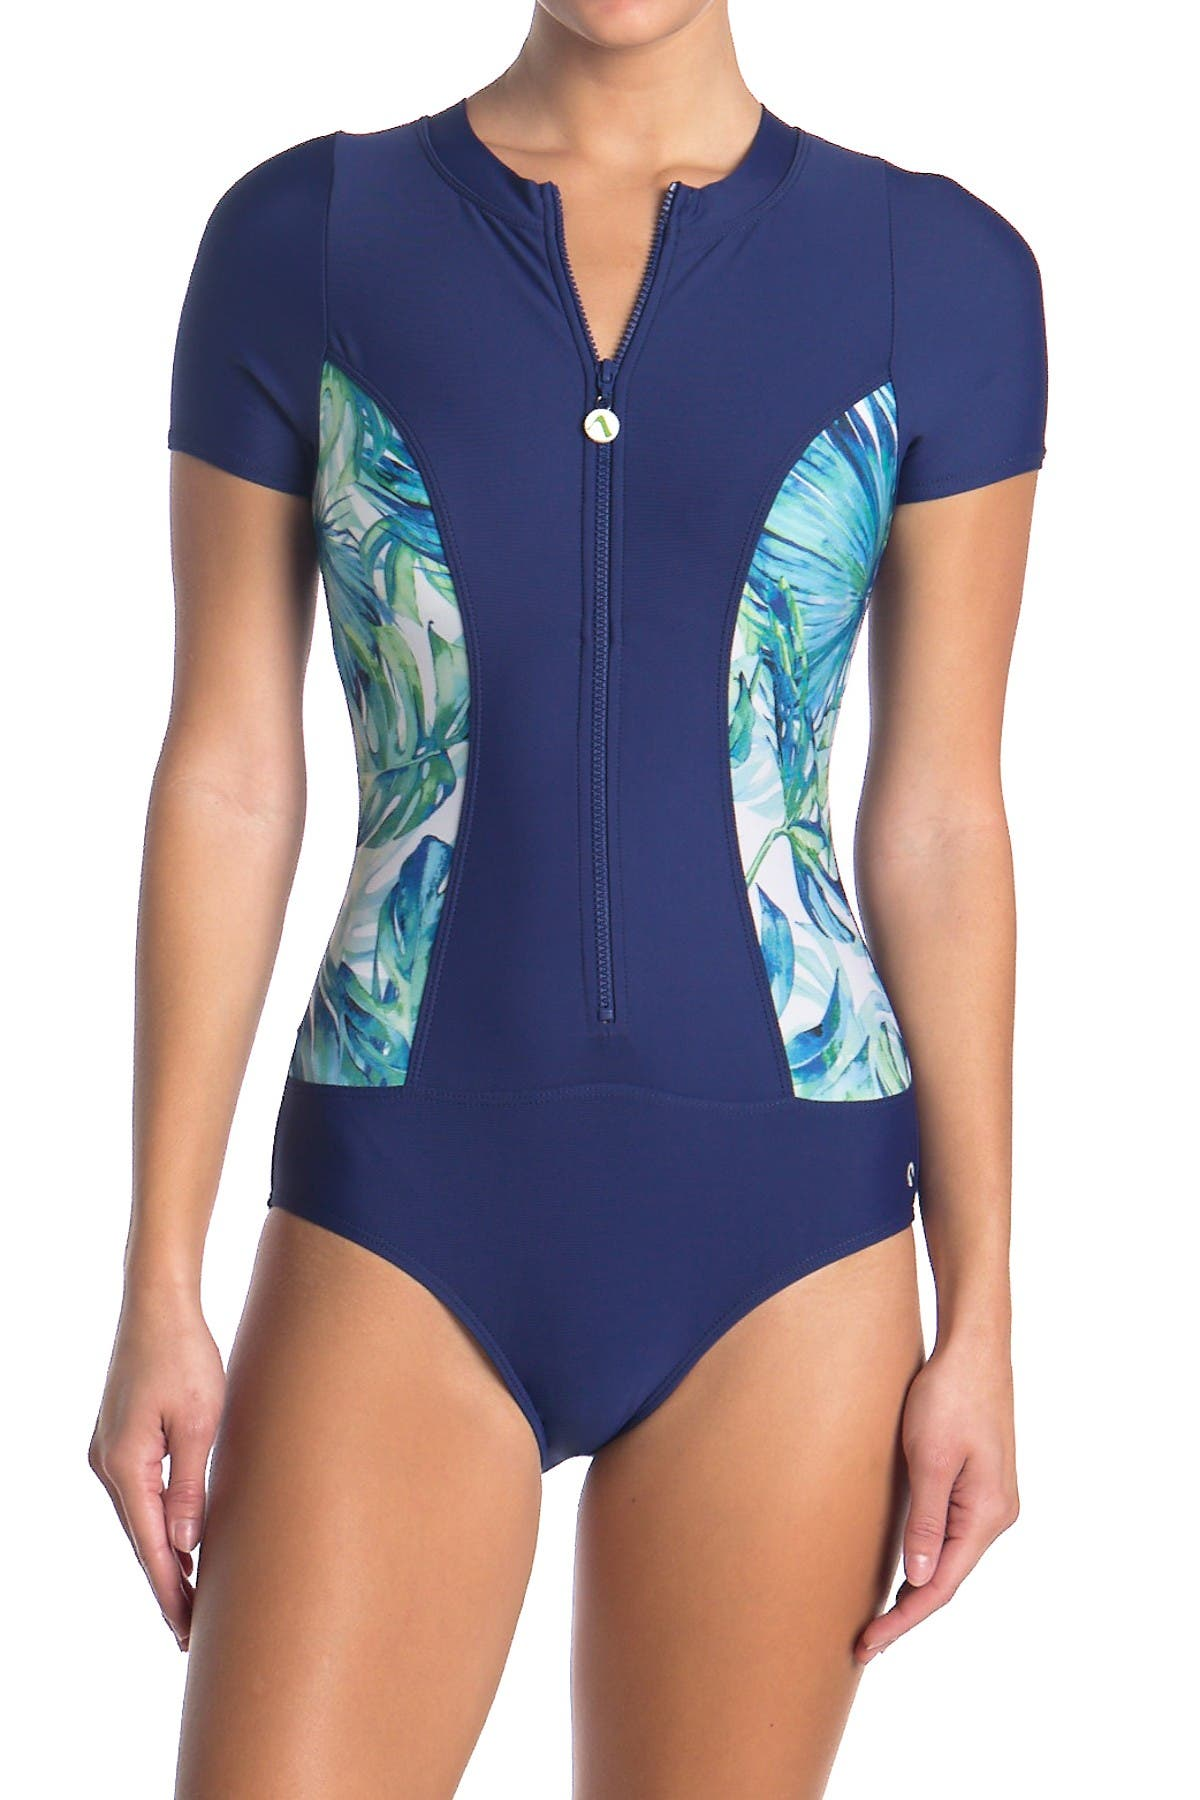 Image of NEXT Staycation Zip One-Piece Swimsuit